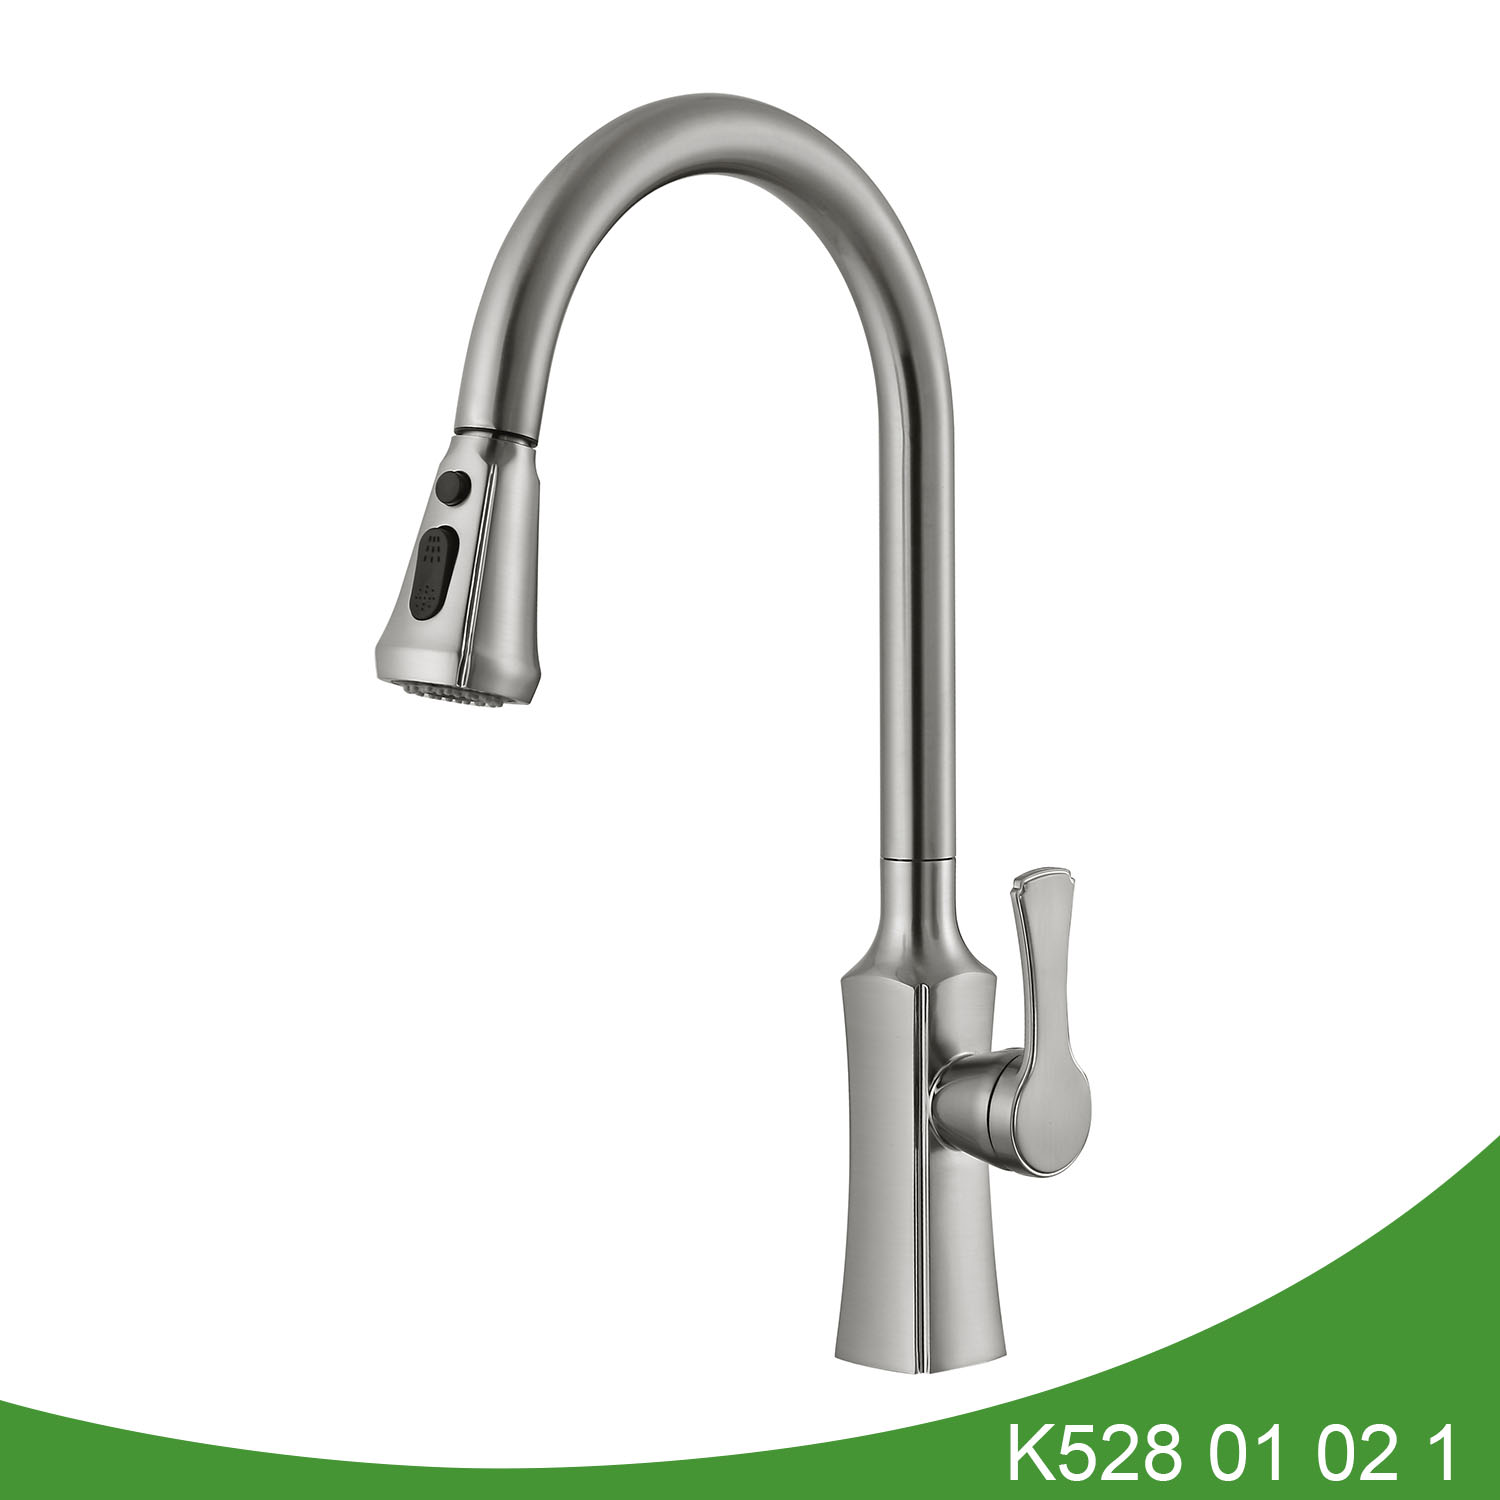 Brush nickel pull out kitchen faucet K528 01 02 1